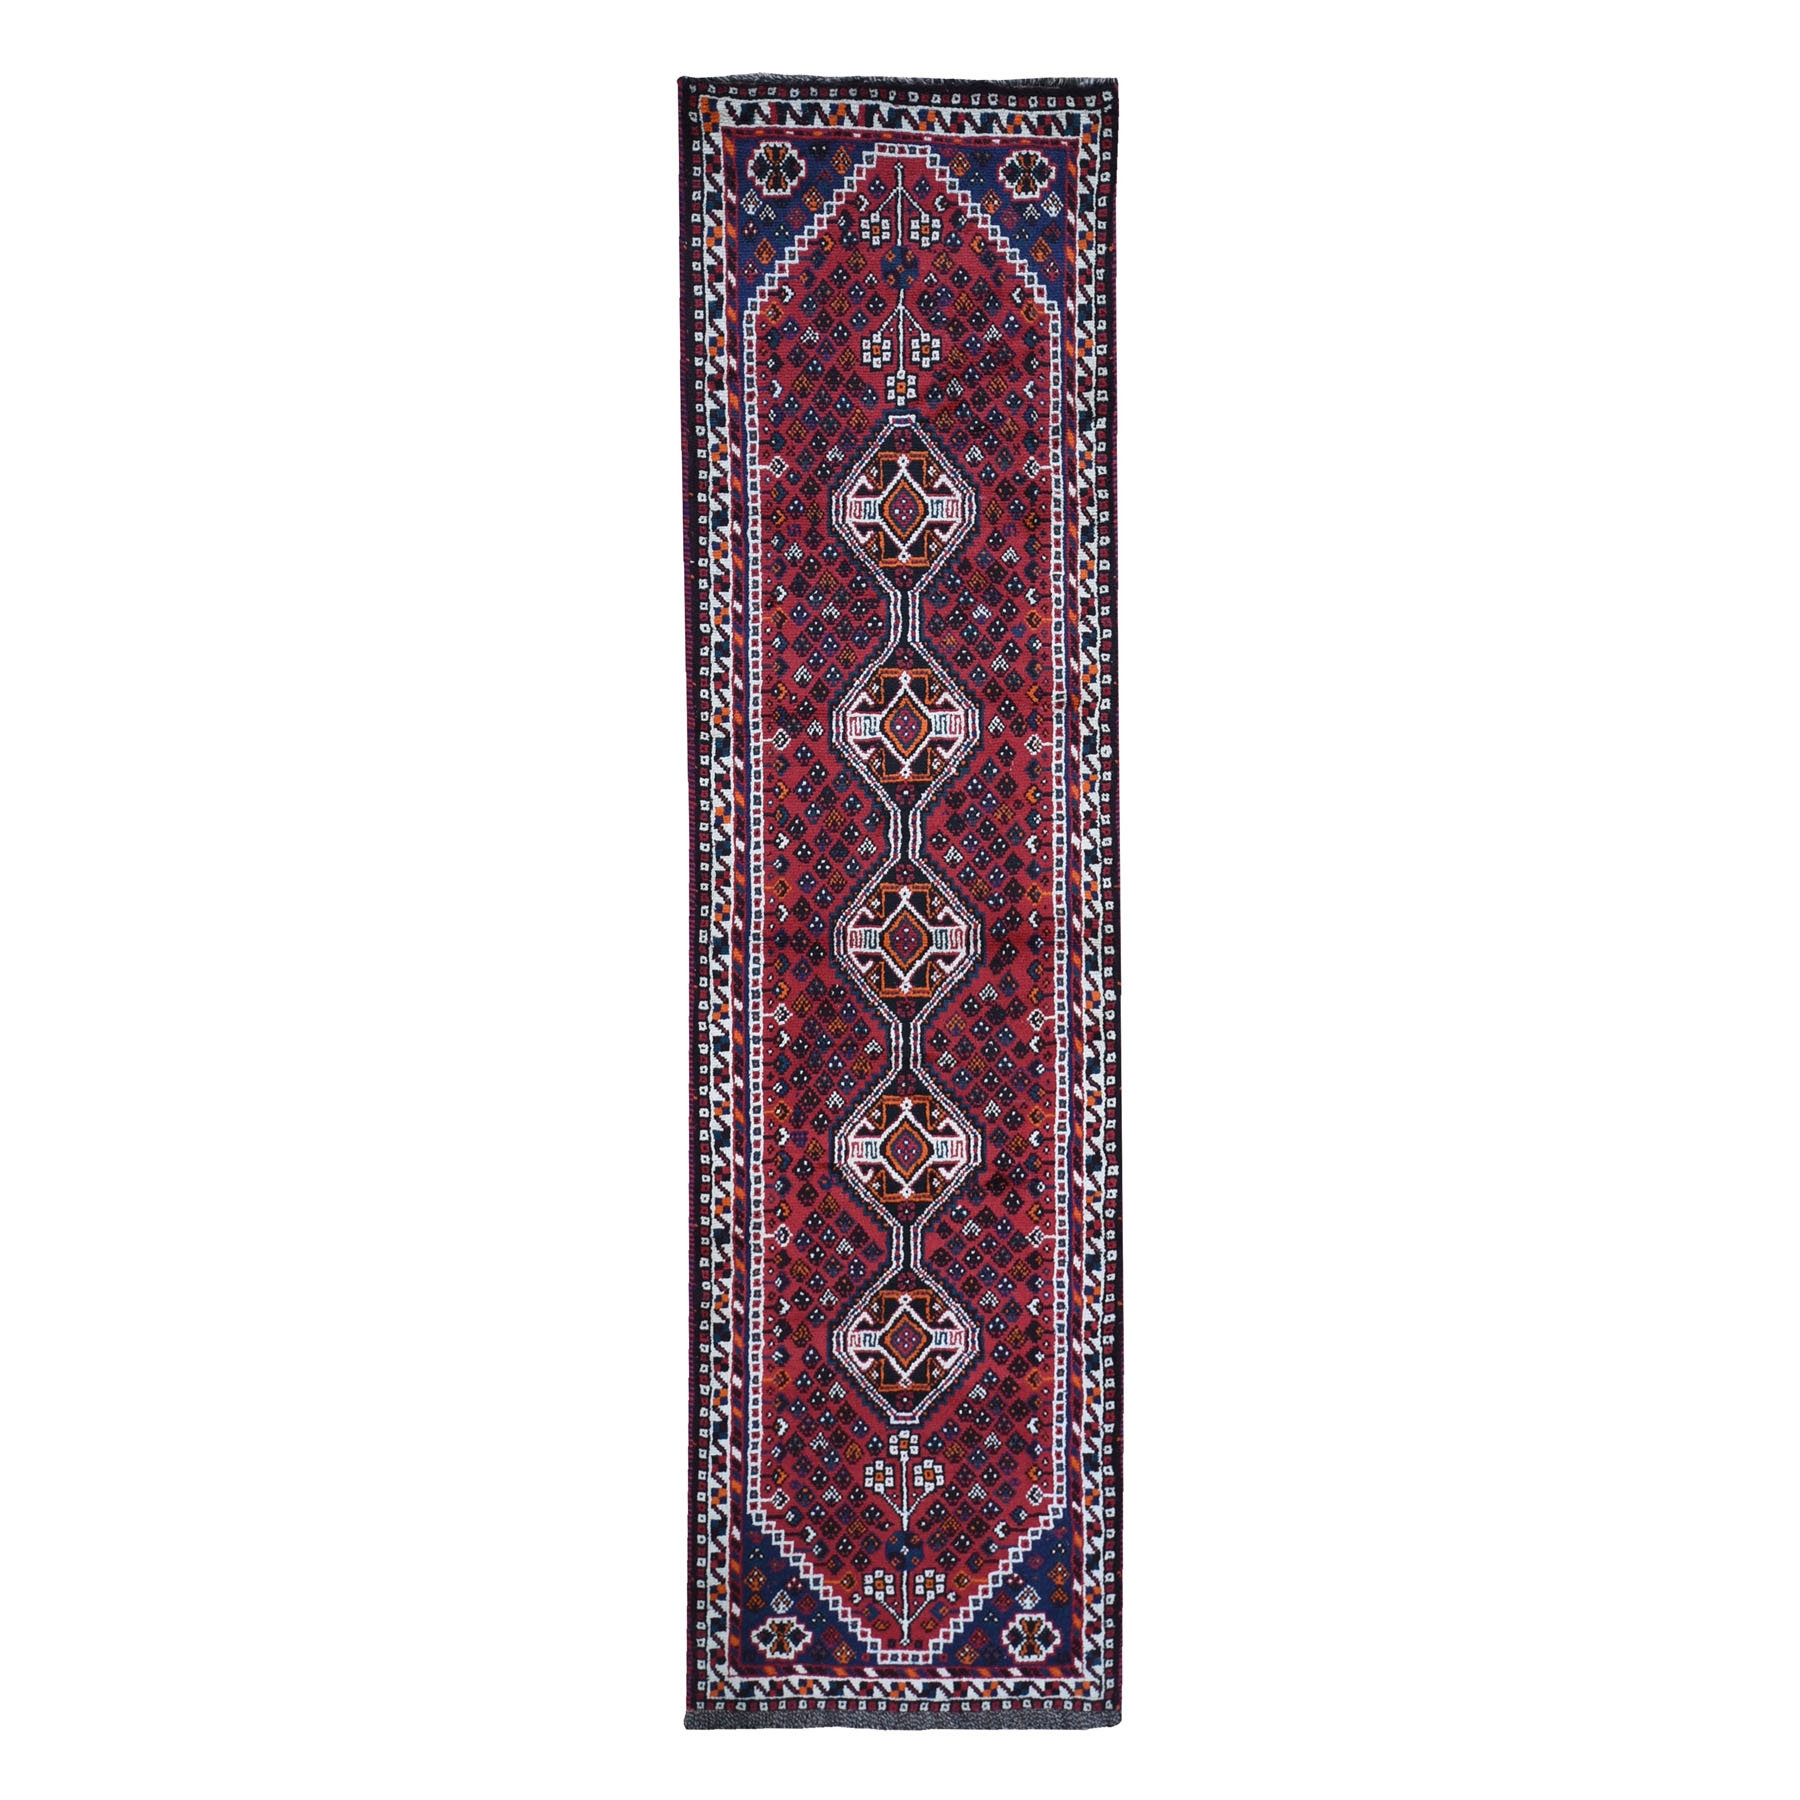 "2'6""x9'7"" New Persian Shiraz Runner Serrated Medallion Organic Wool Hand Woven Oriental Rug"